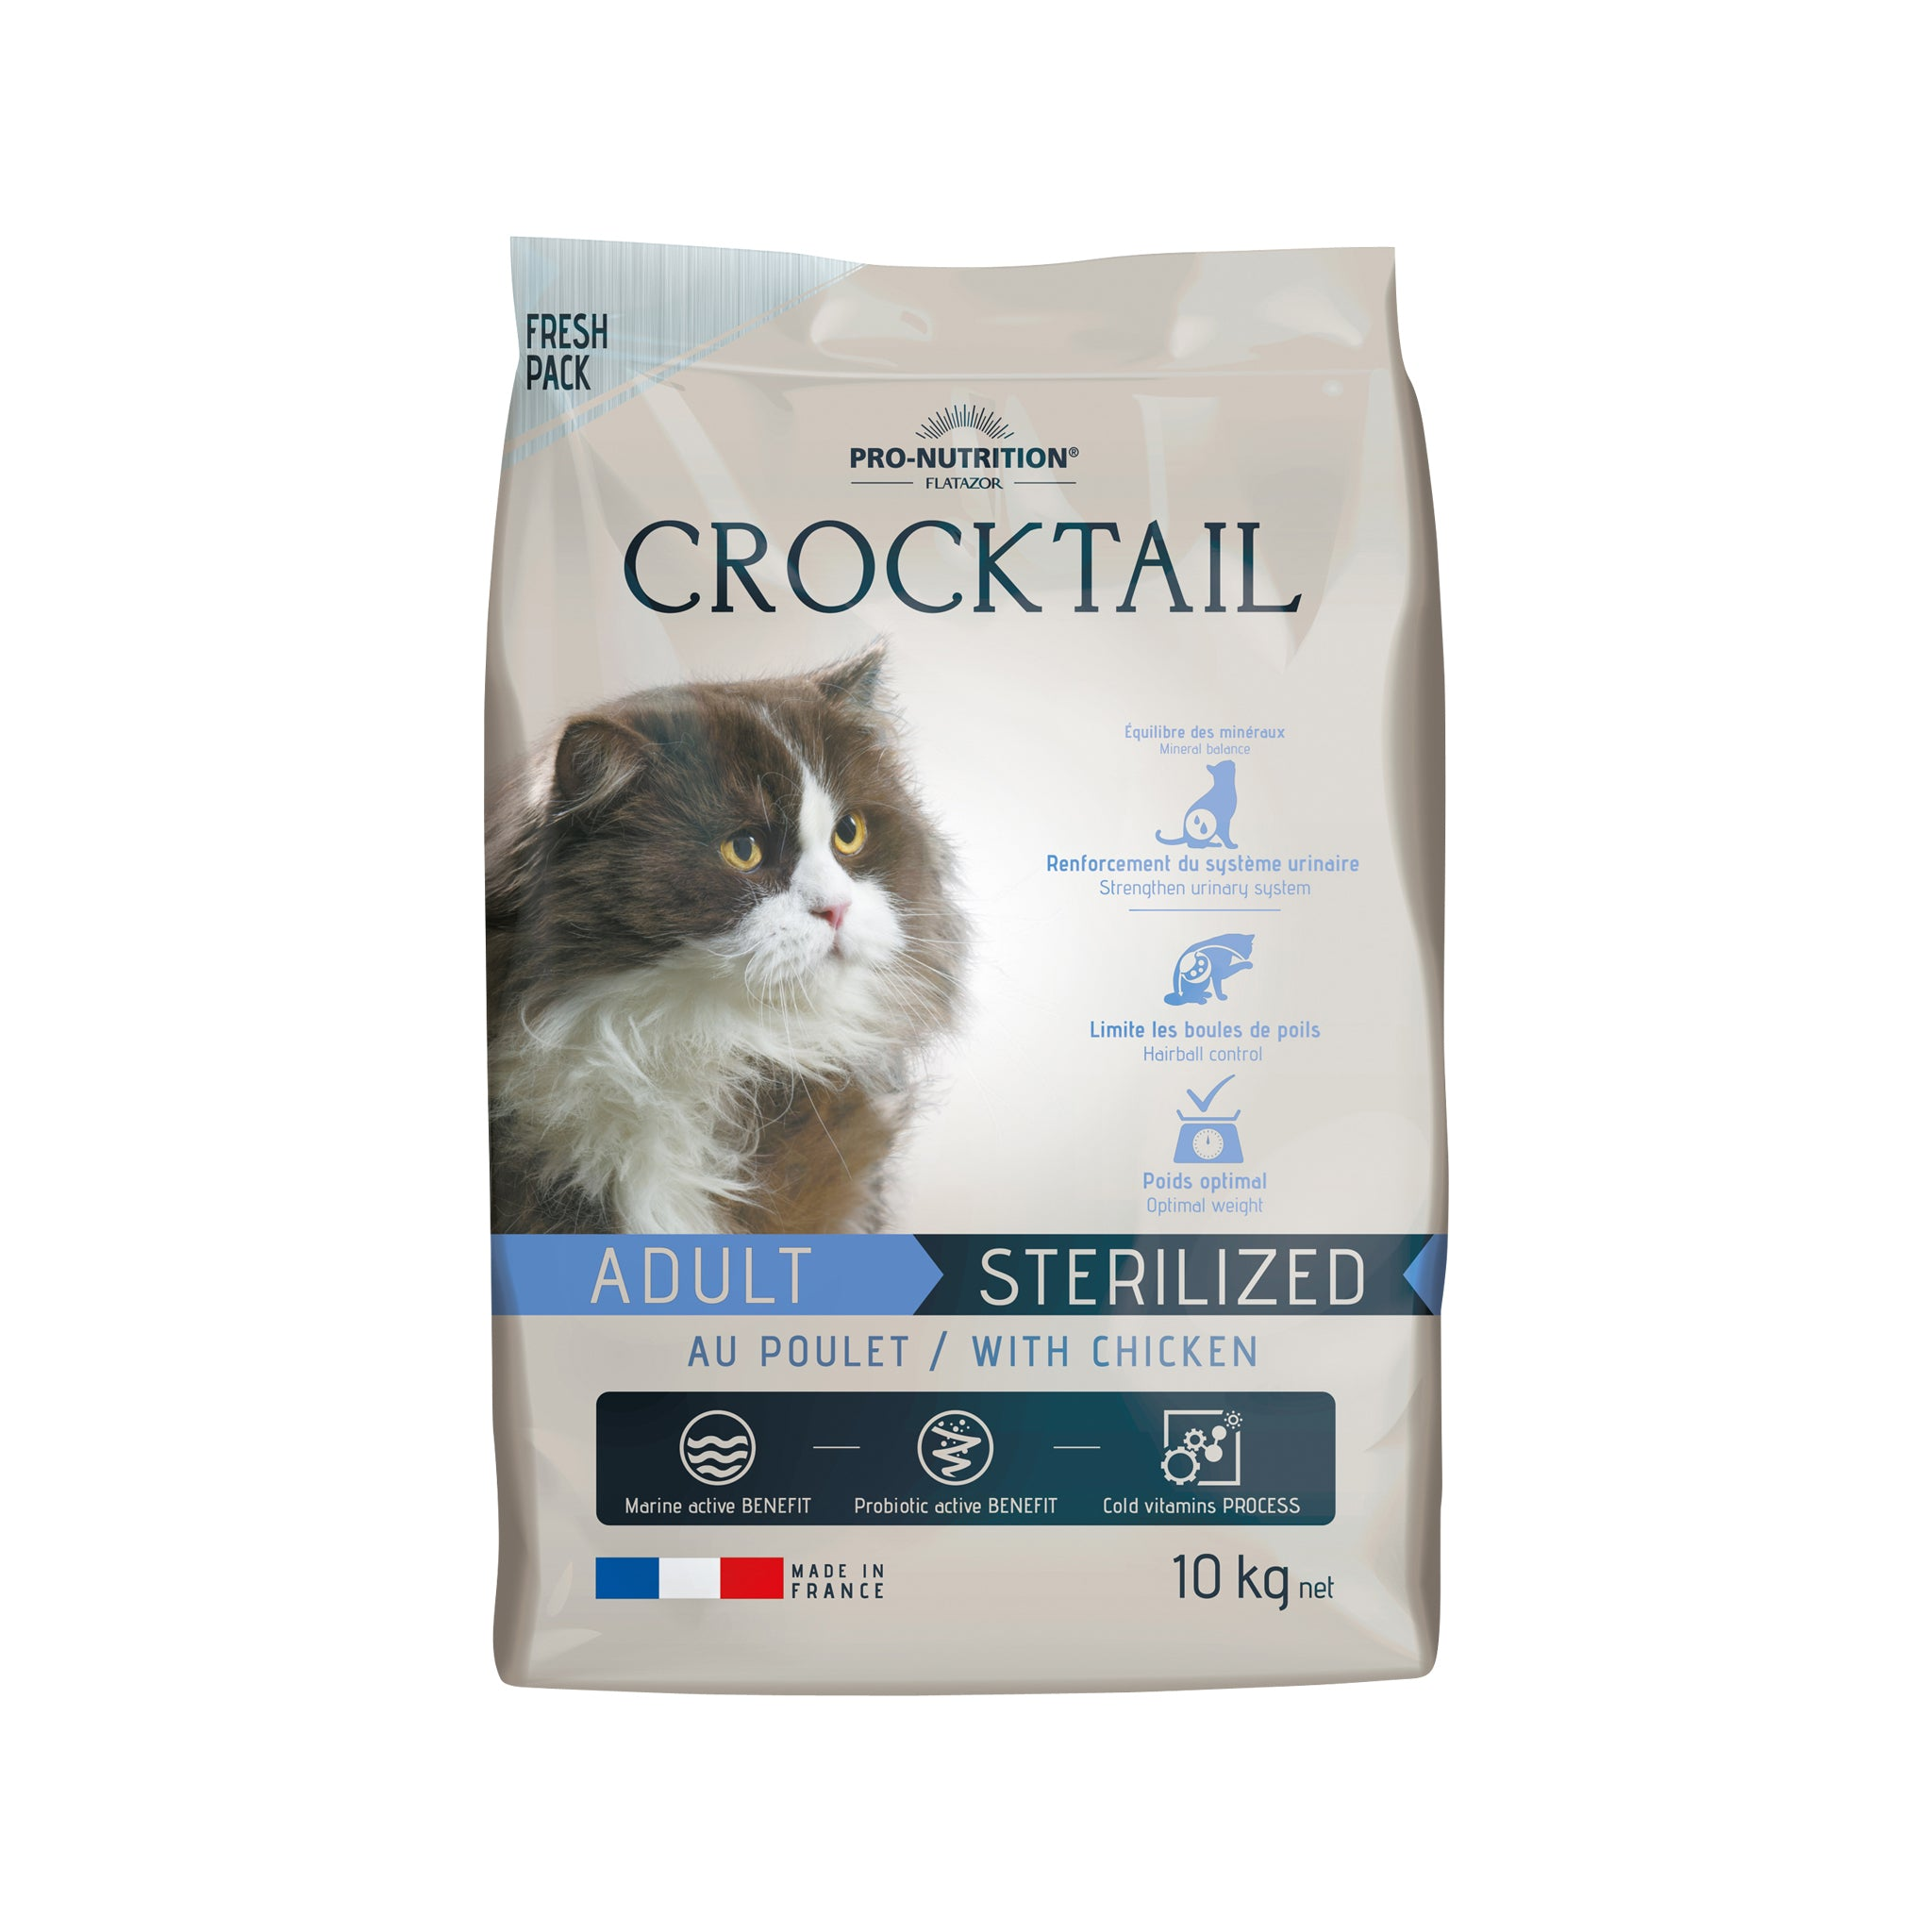 Crocktail Adult Sterilized Chicken 10kg